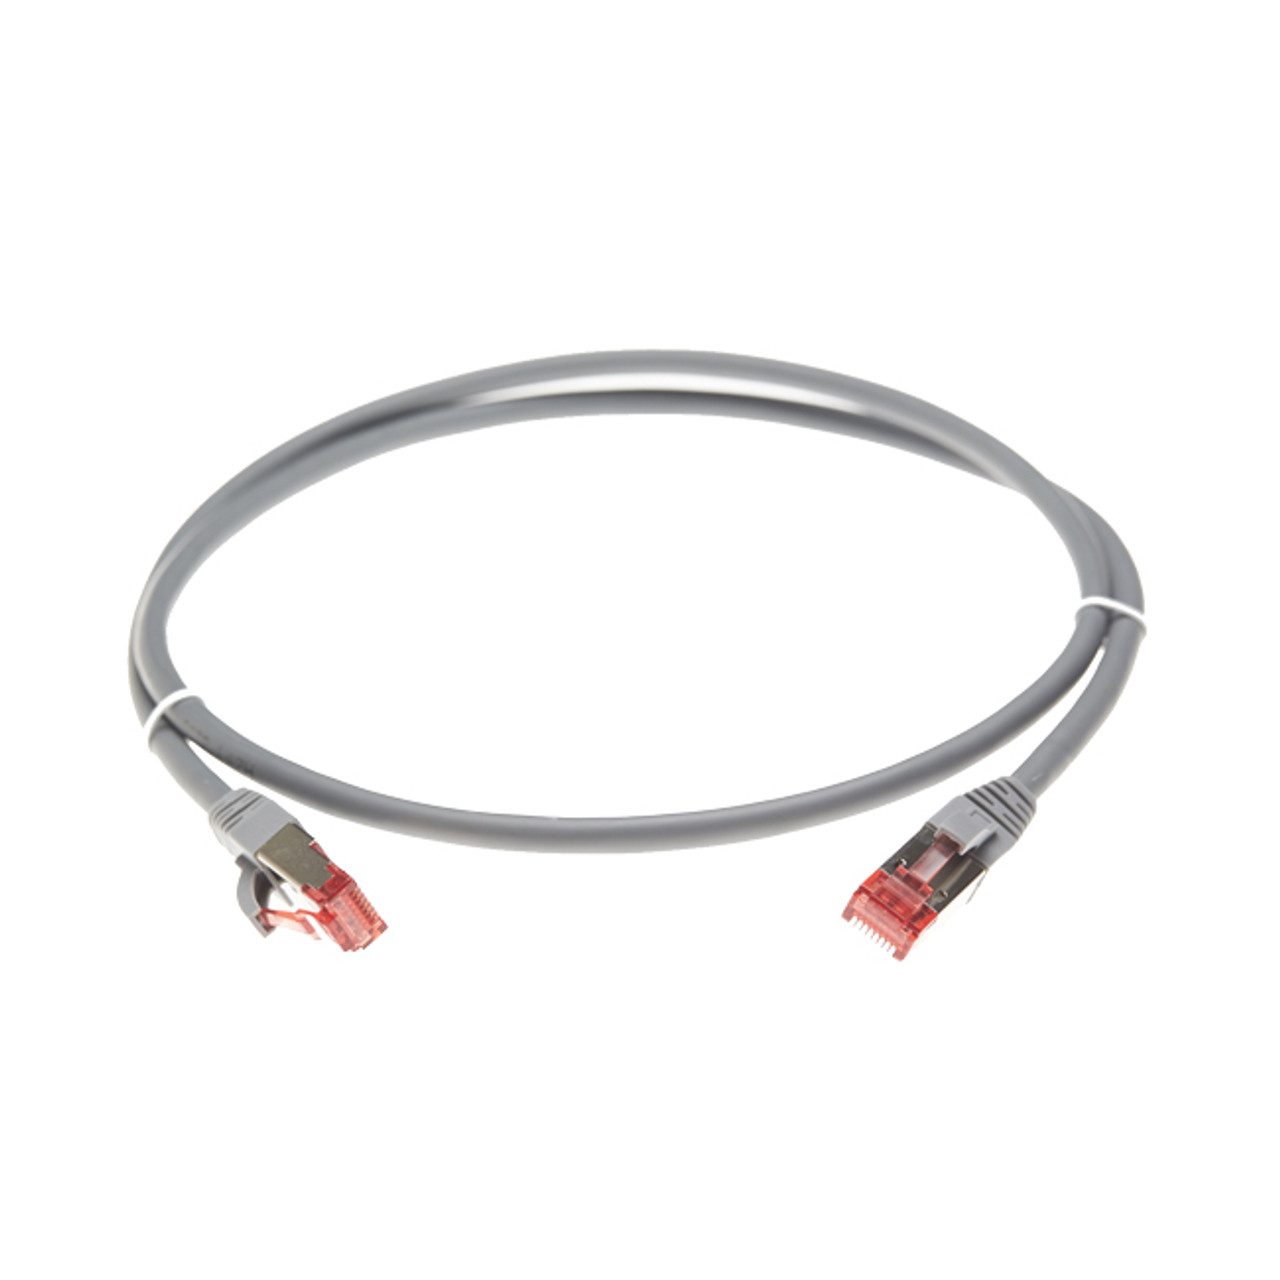 Image for 2.5m Cat 6A S/FTP LSZH Ethernet Network Cable. Grey CX Computer Superstore